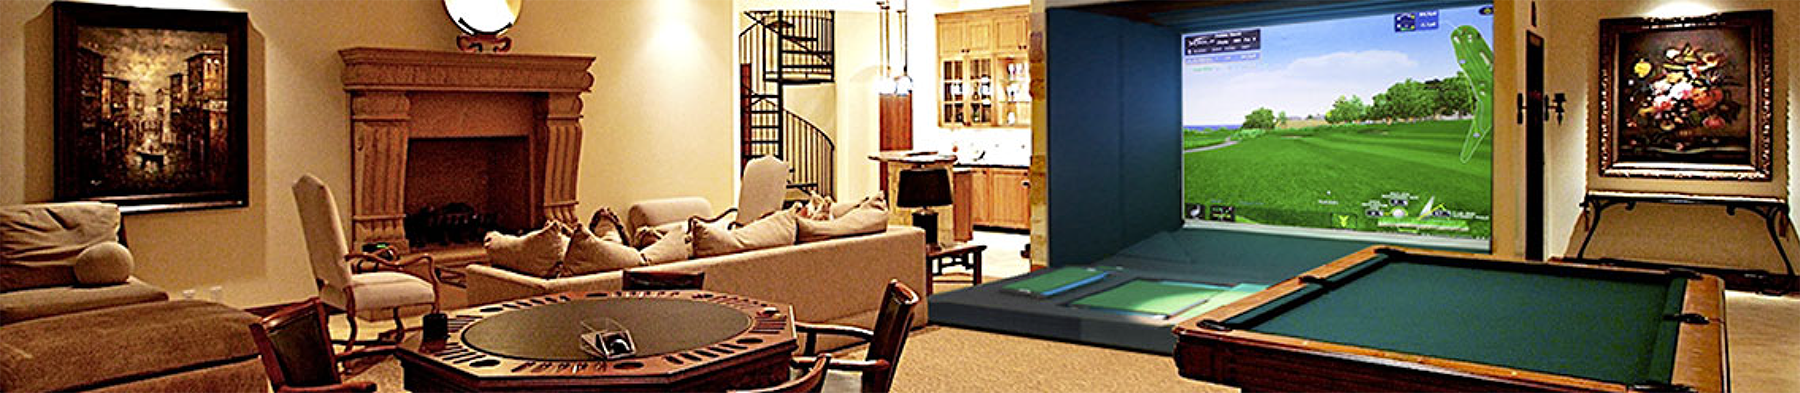 X-Golf Residential - Home Installation